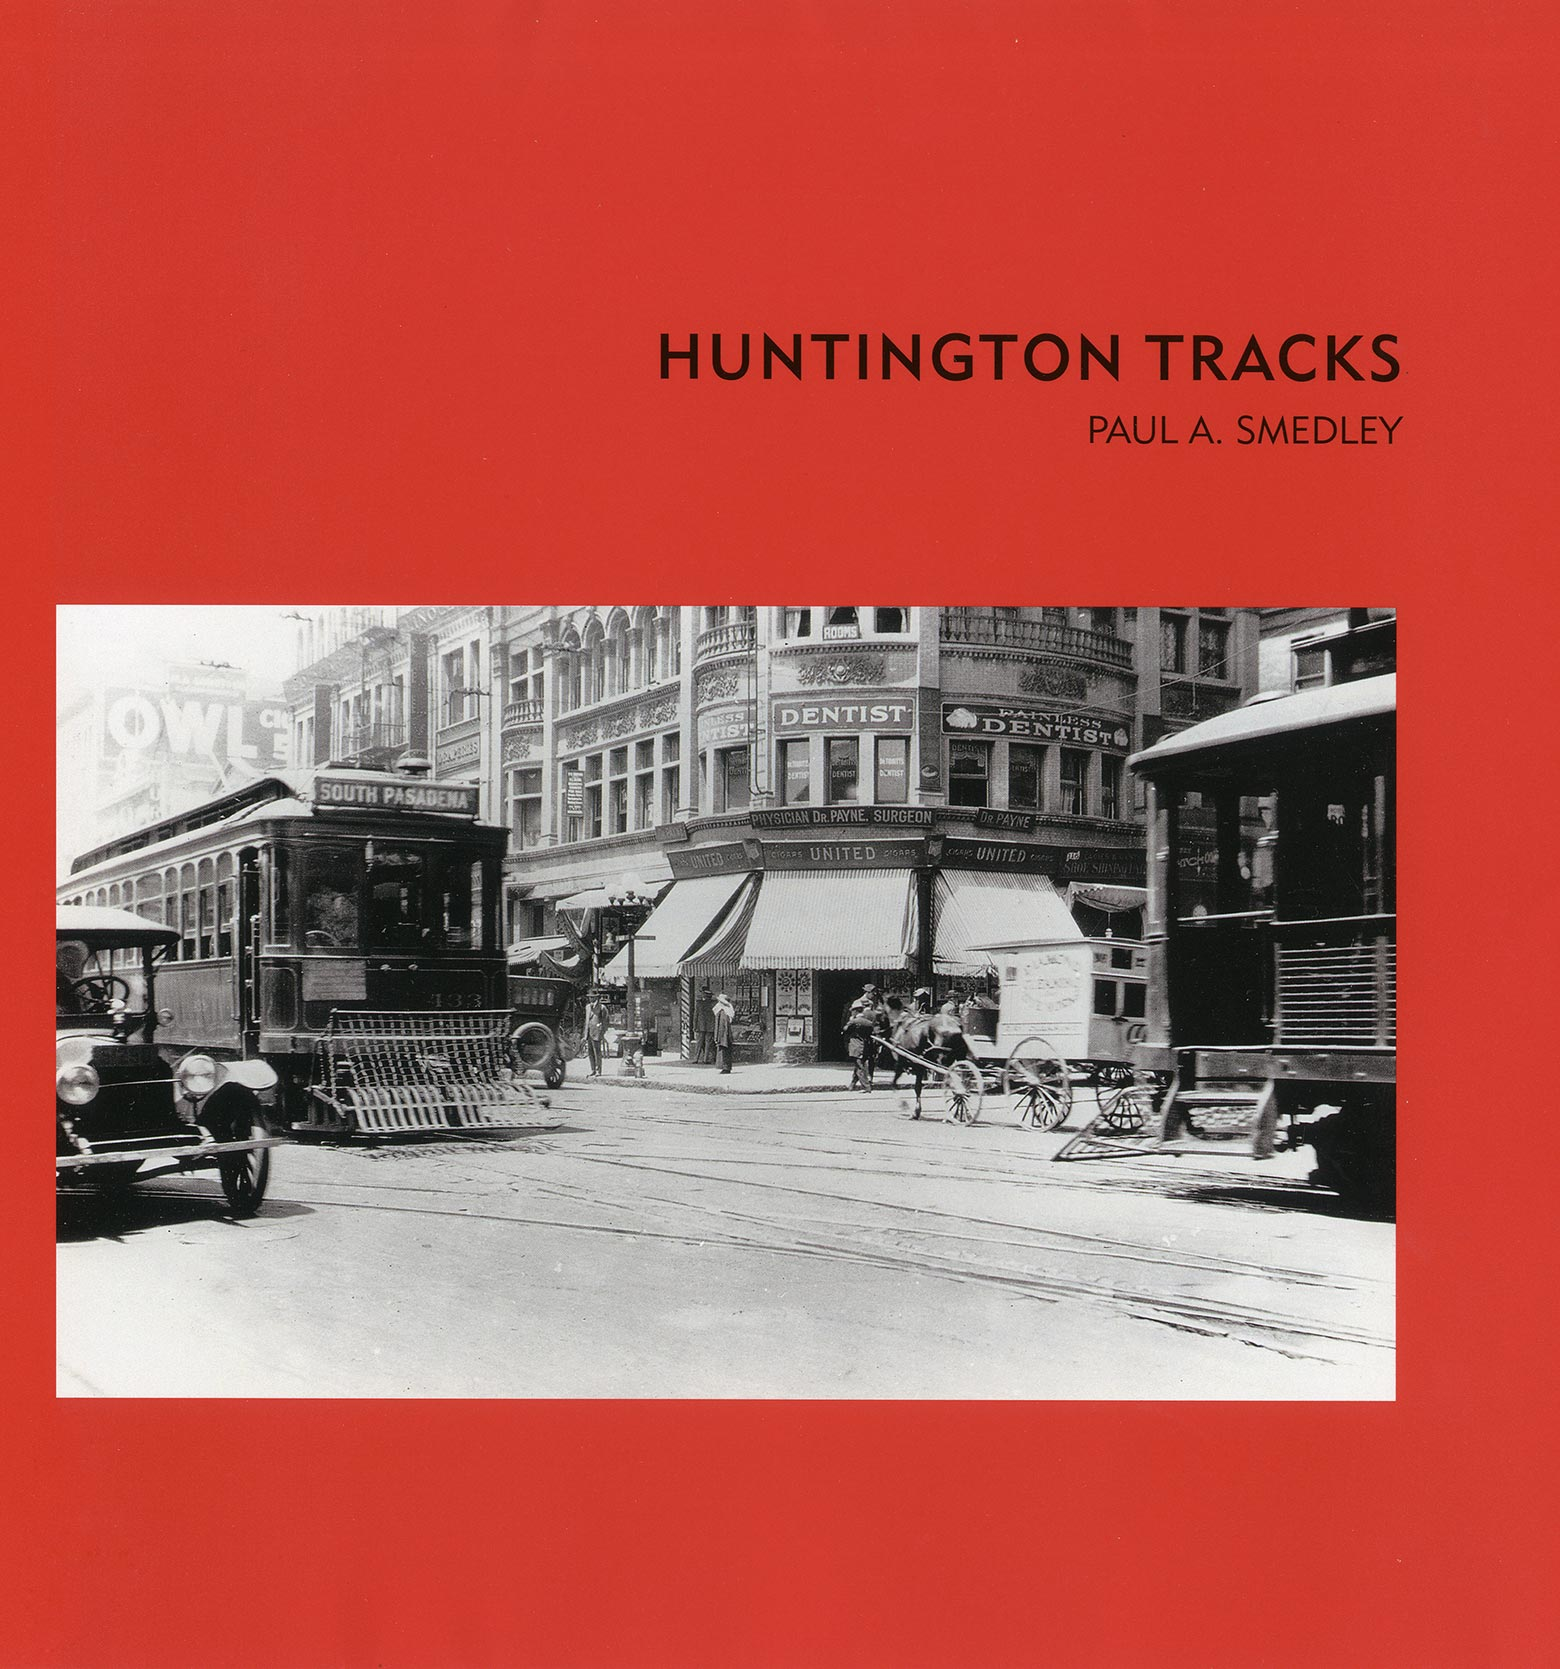 huntingtontrackis-cover-01